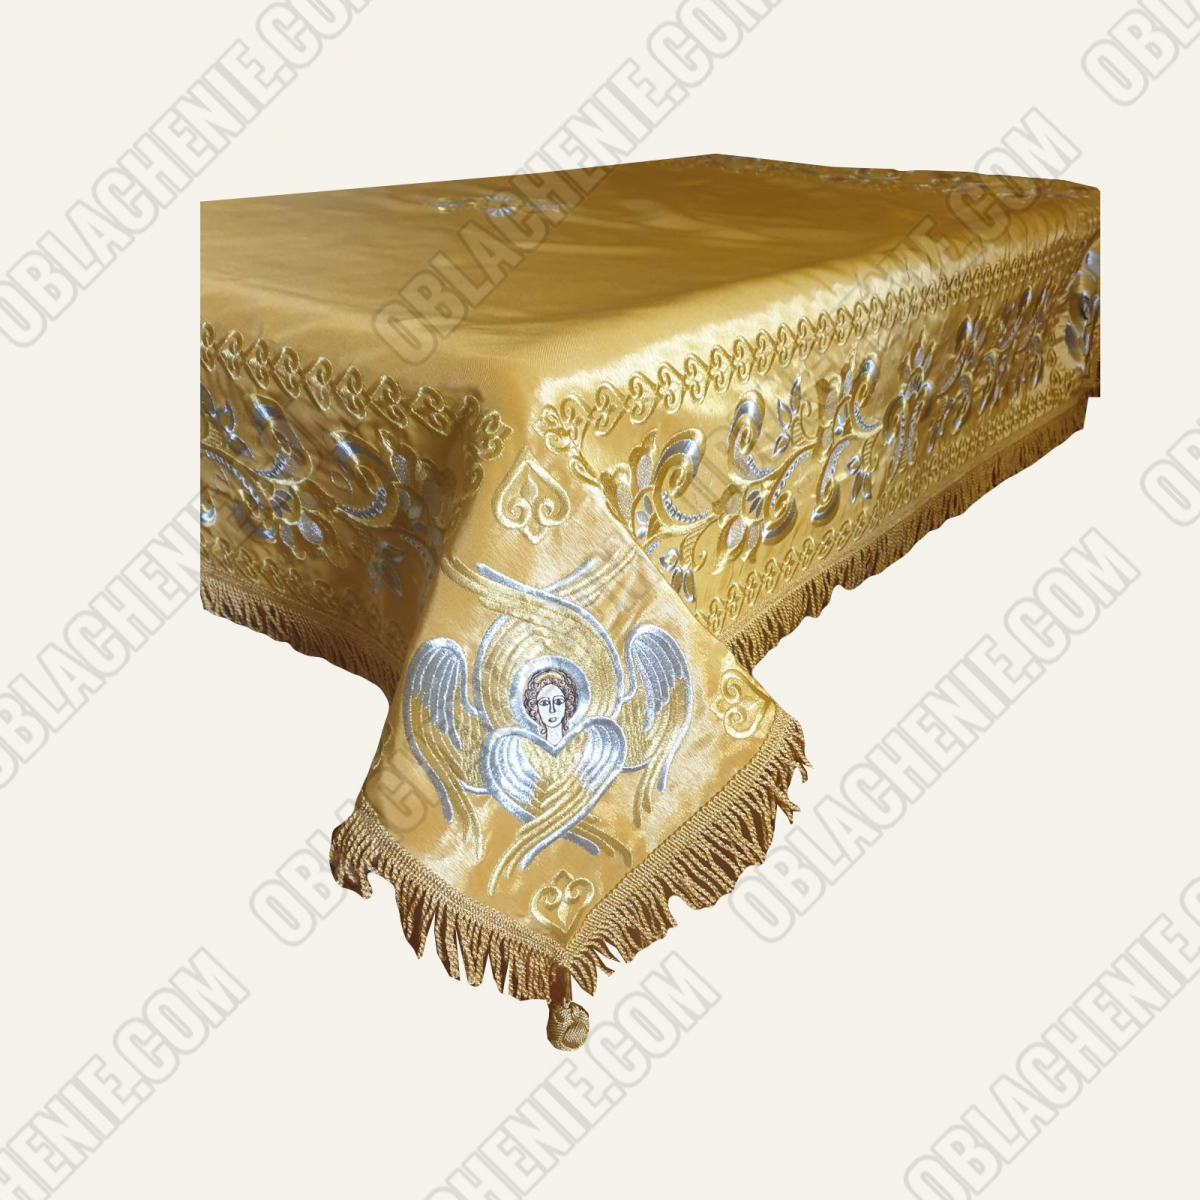 HOLY TABLE VESTMENTS 11370